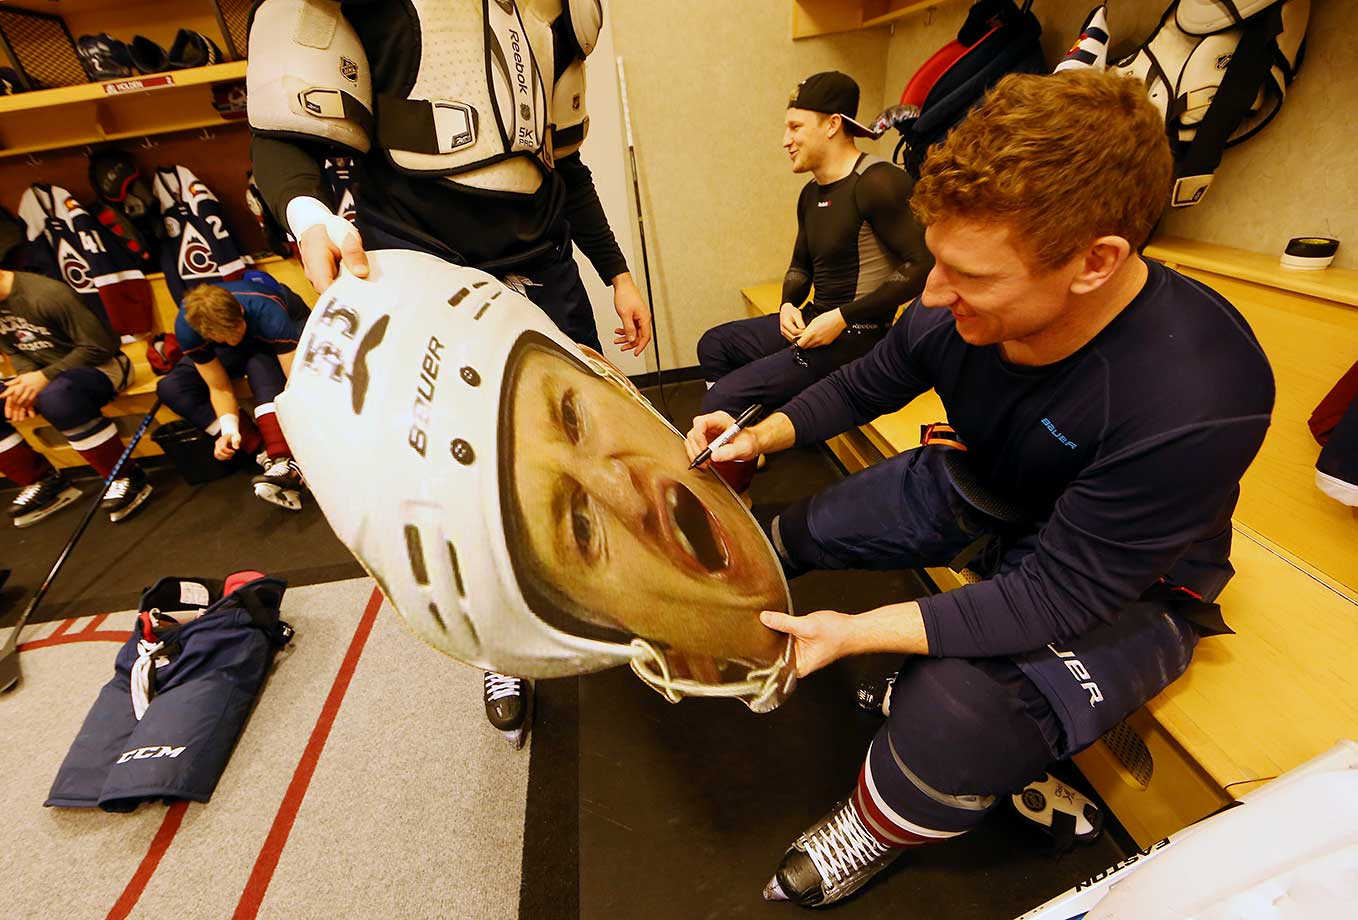 Cody McLeod of Colorado signs a cardboard cutout of his head for a fan prior to a game against San Jose.